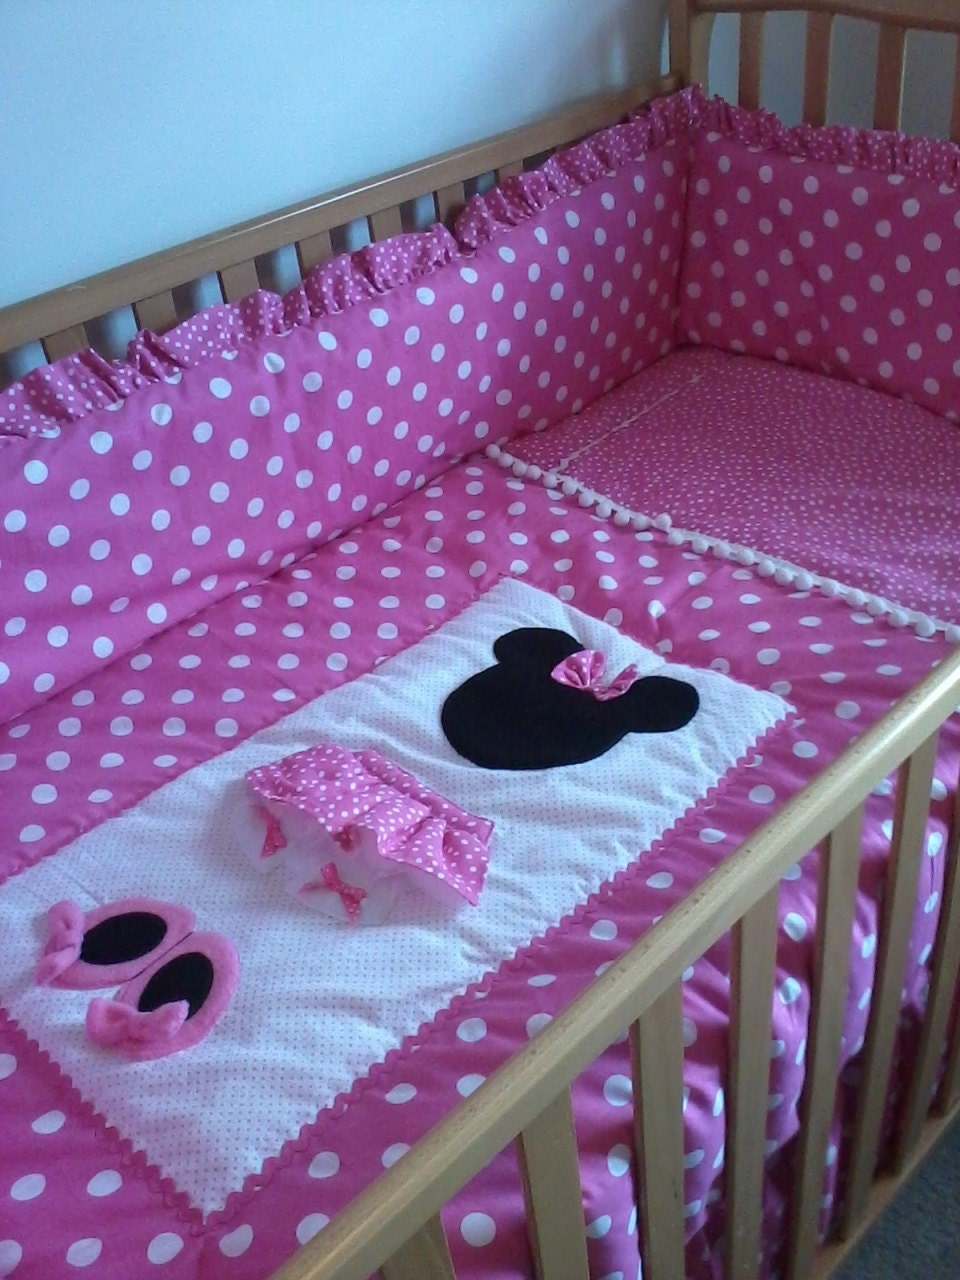 Disney Baby Bedroom Furniture: Minnie Mouse Pretty In Pink Set